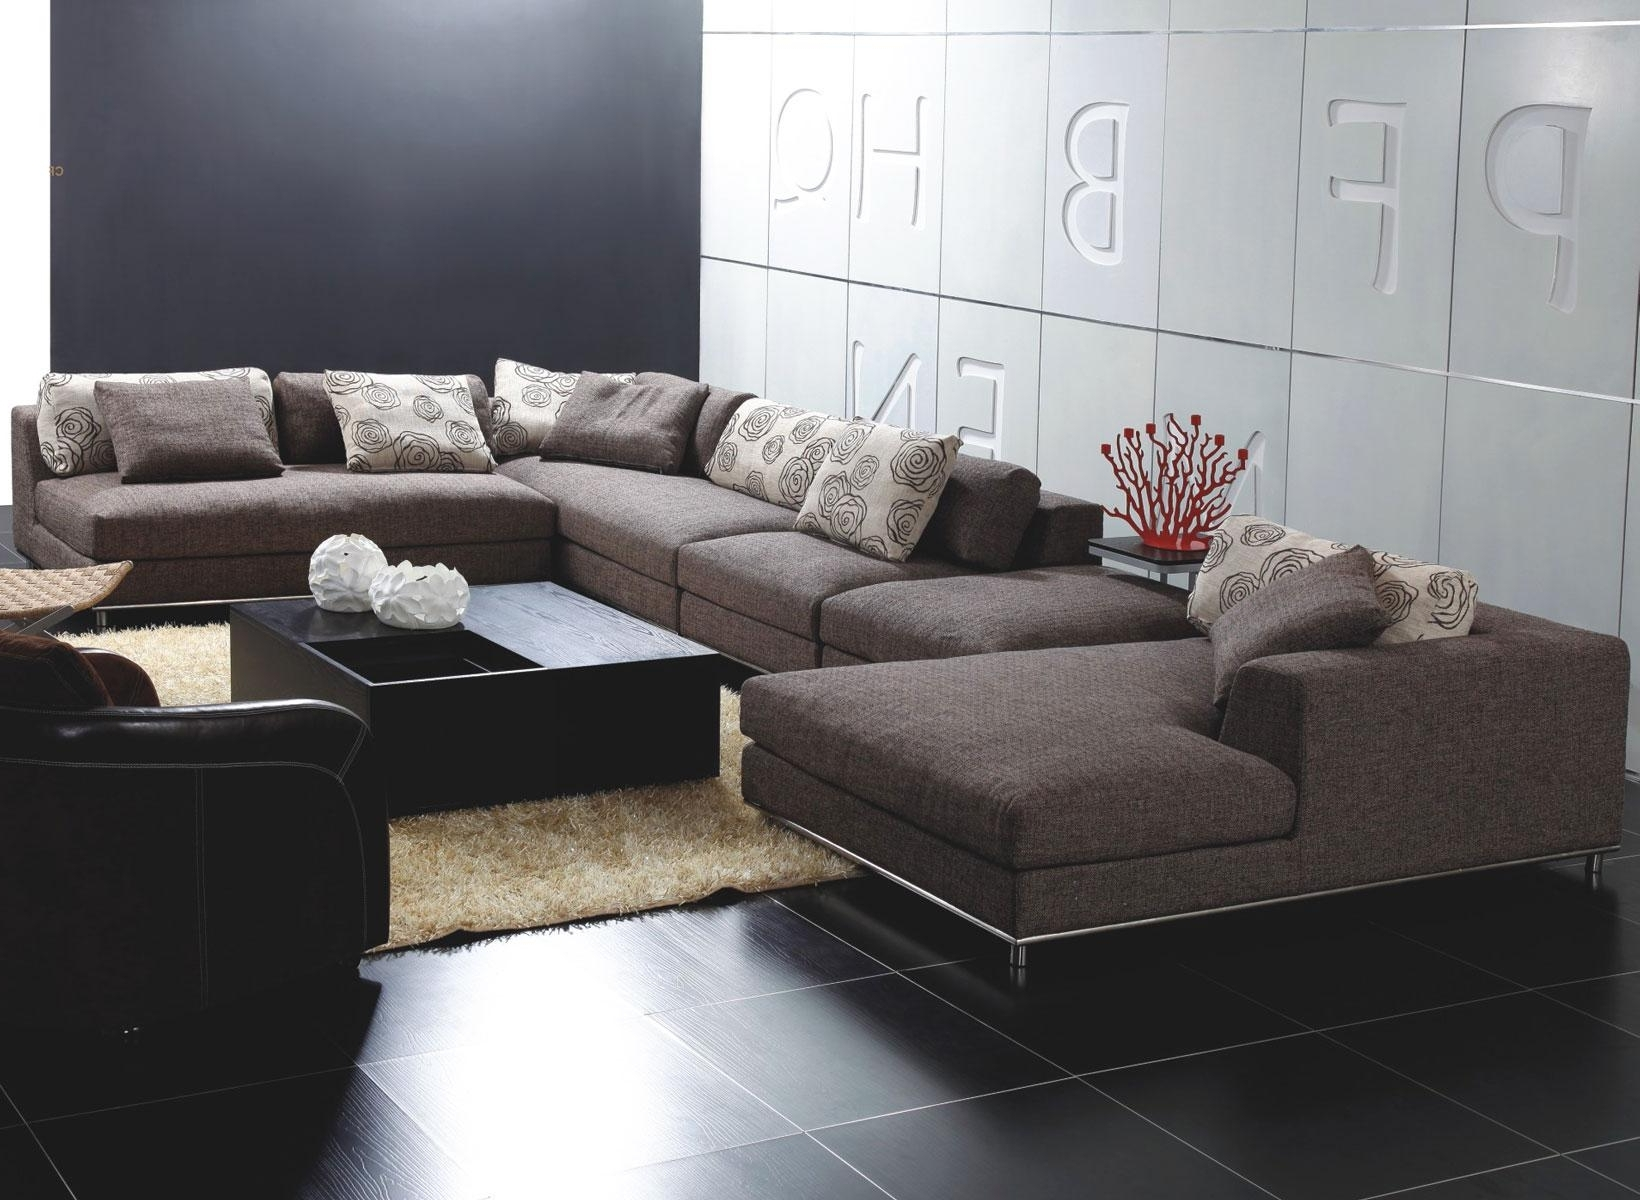 Best Designer Sectional Sofas 56 Contemporary Sofa Inspiration Throughout Recent Contemporary Sectional Sofas (View 2 of 15)